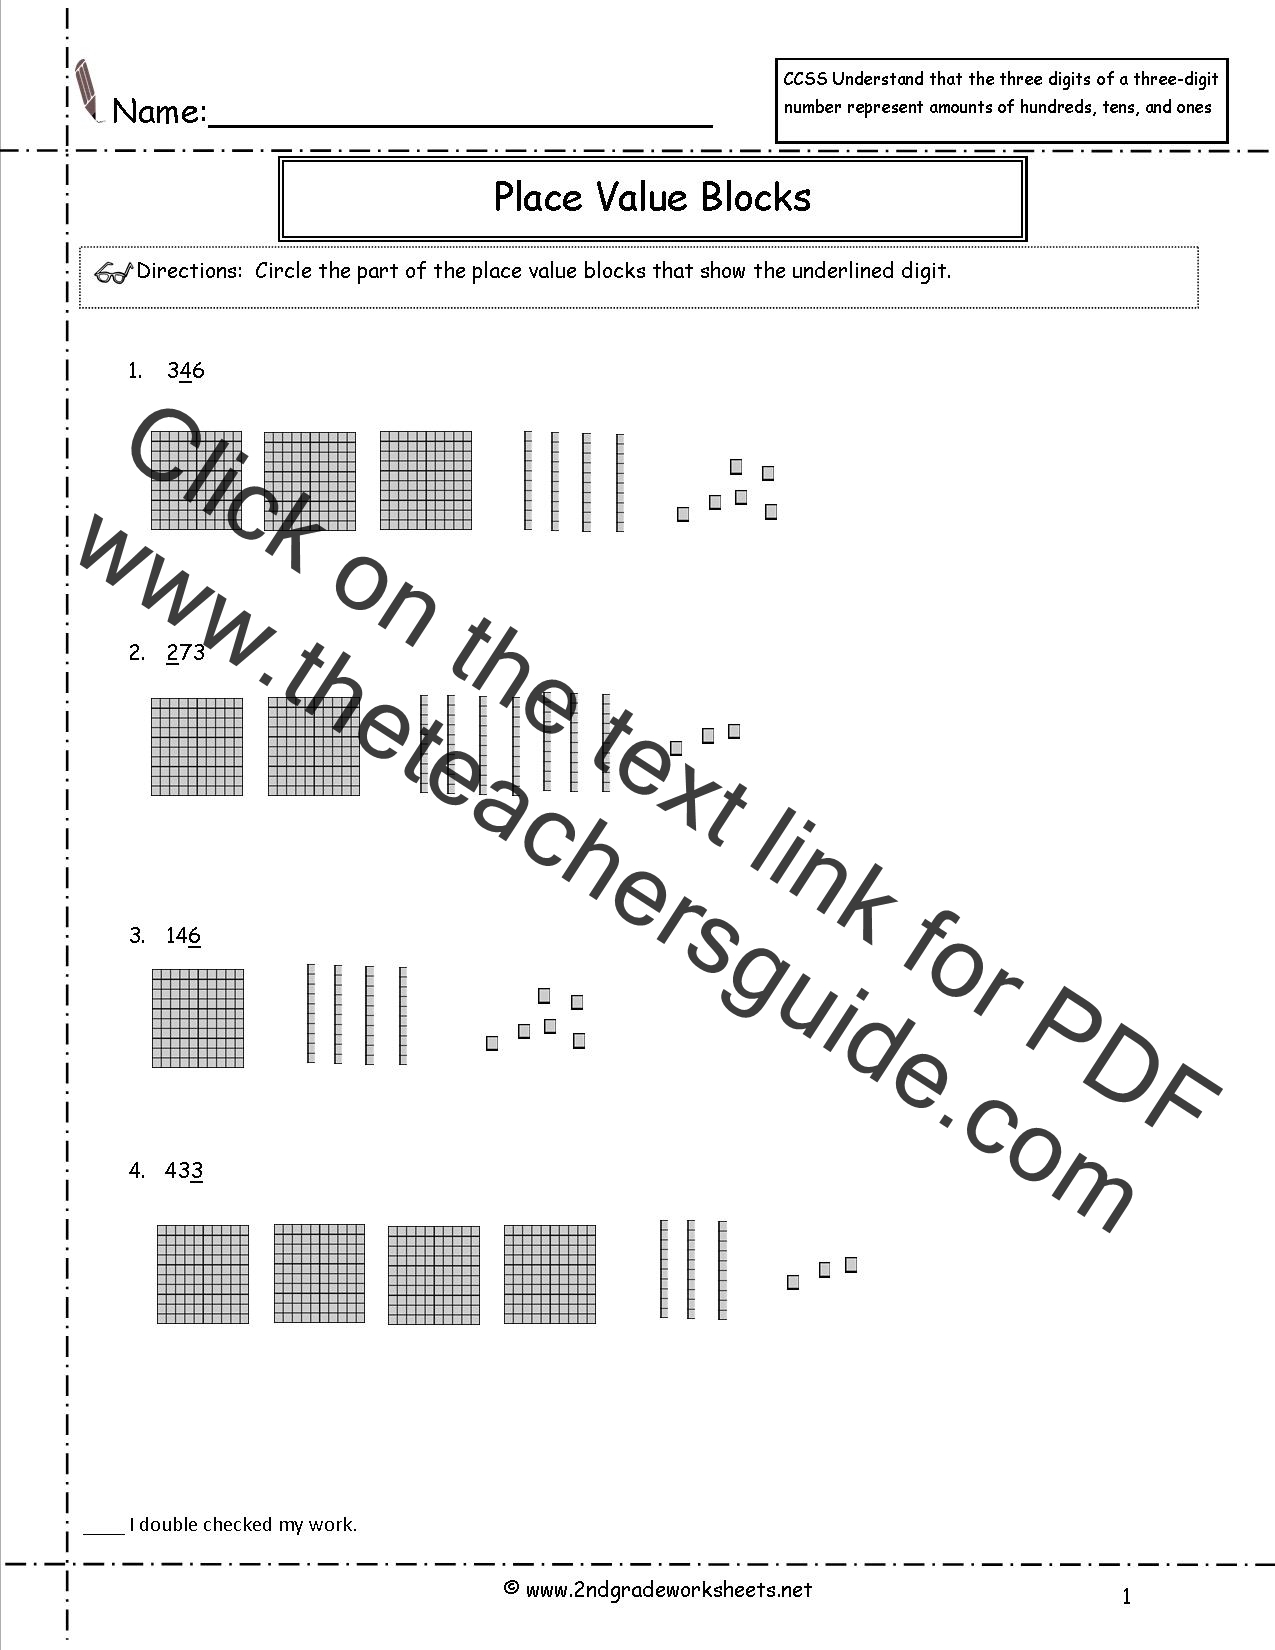 Place Value Blocks Worksheets Images